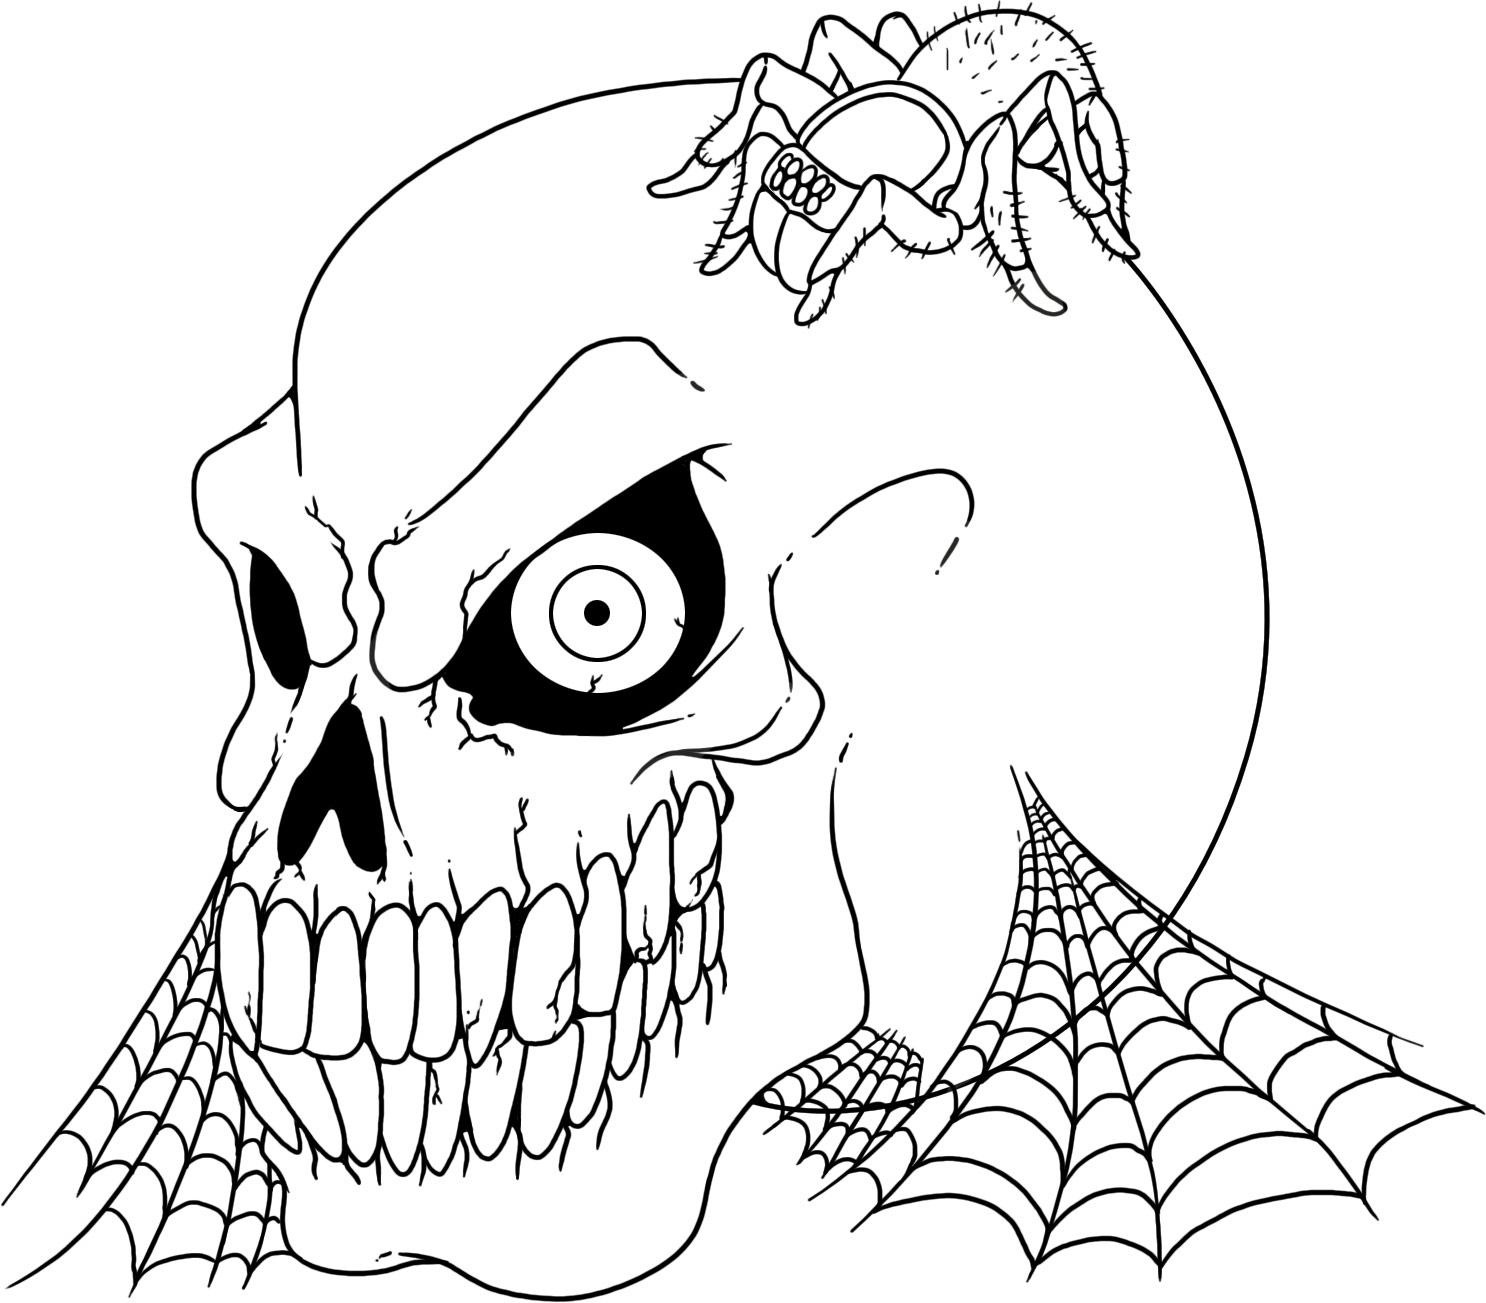 skull coloring pages to print - Cool Printable Coloring Pages